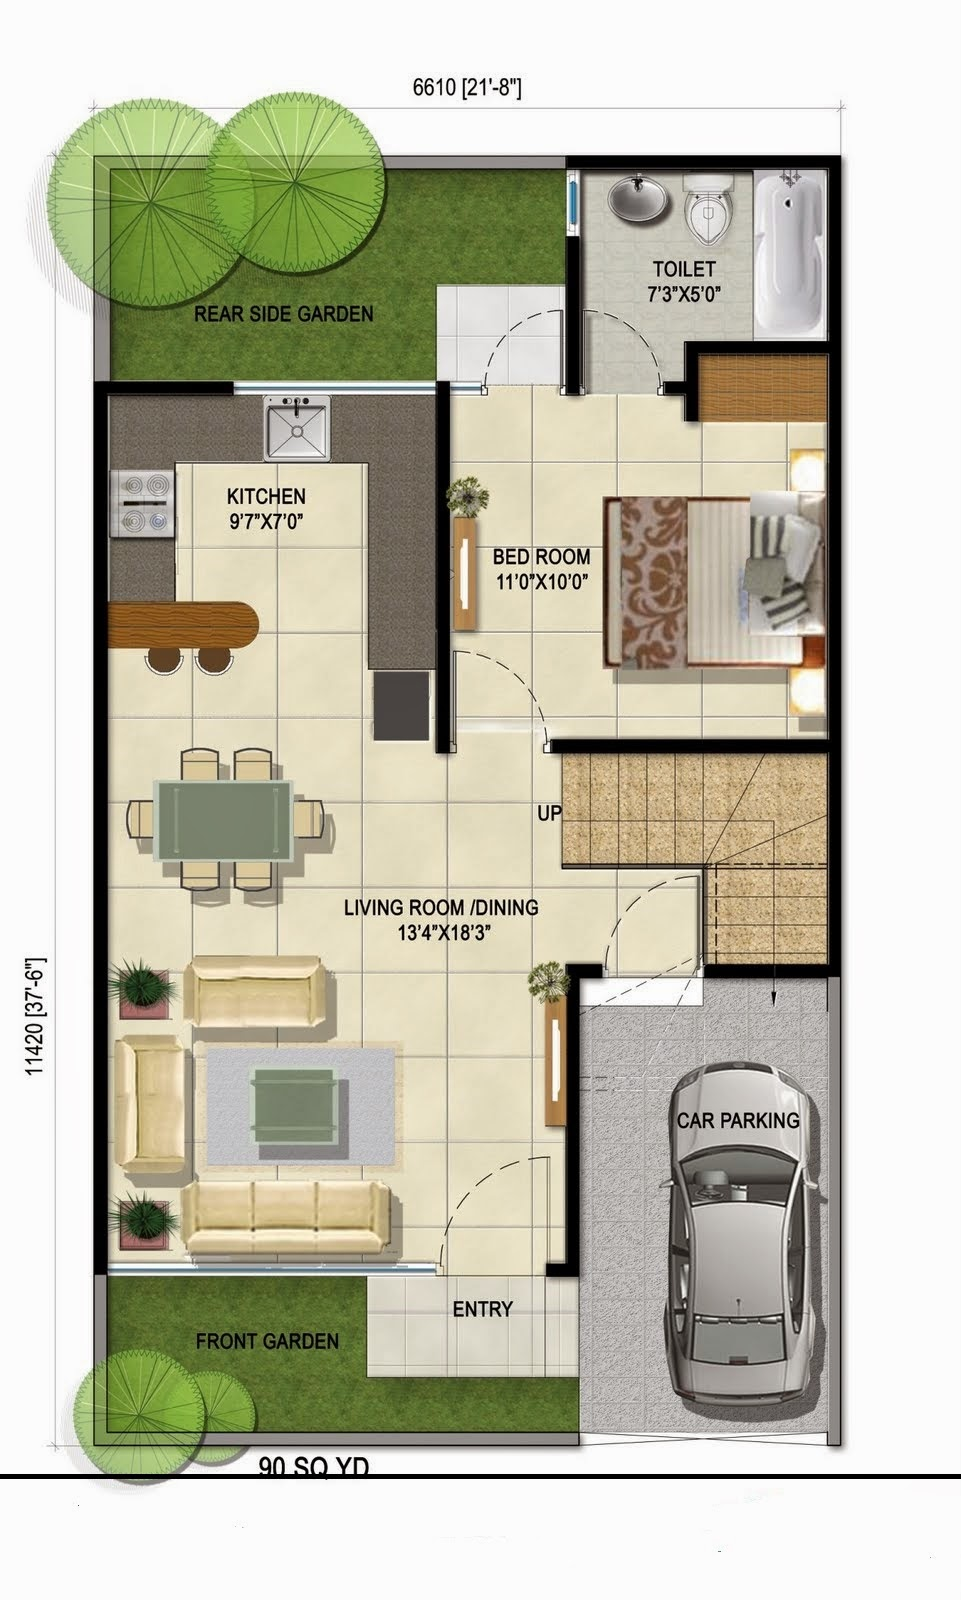 Foundation dezin decor villa bungalow floor layout for Layout design of bungalows